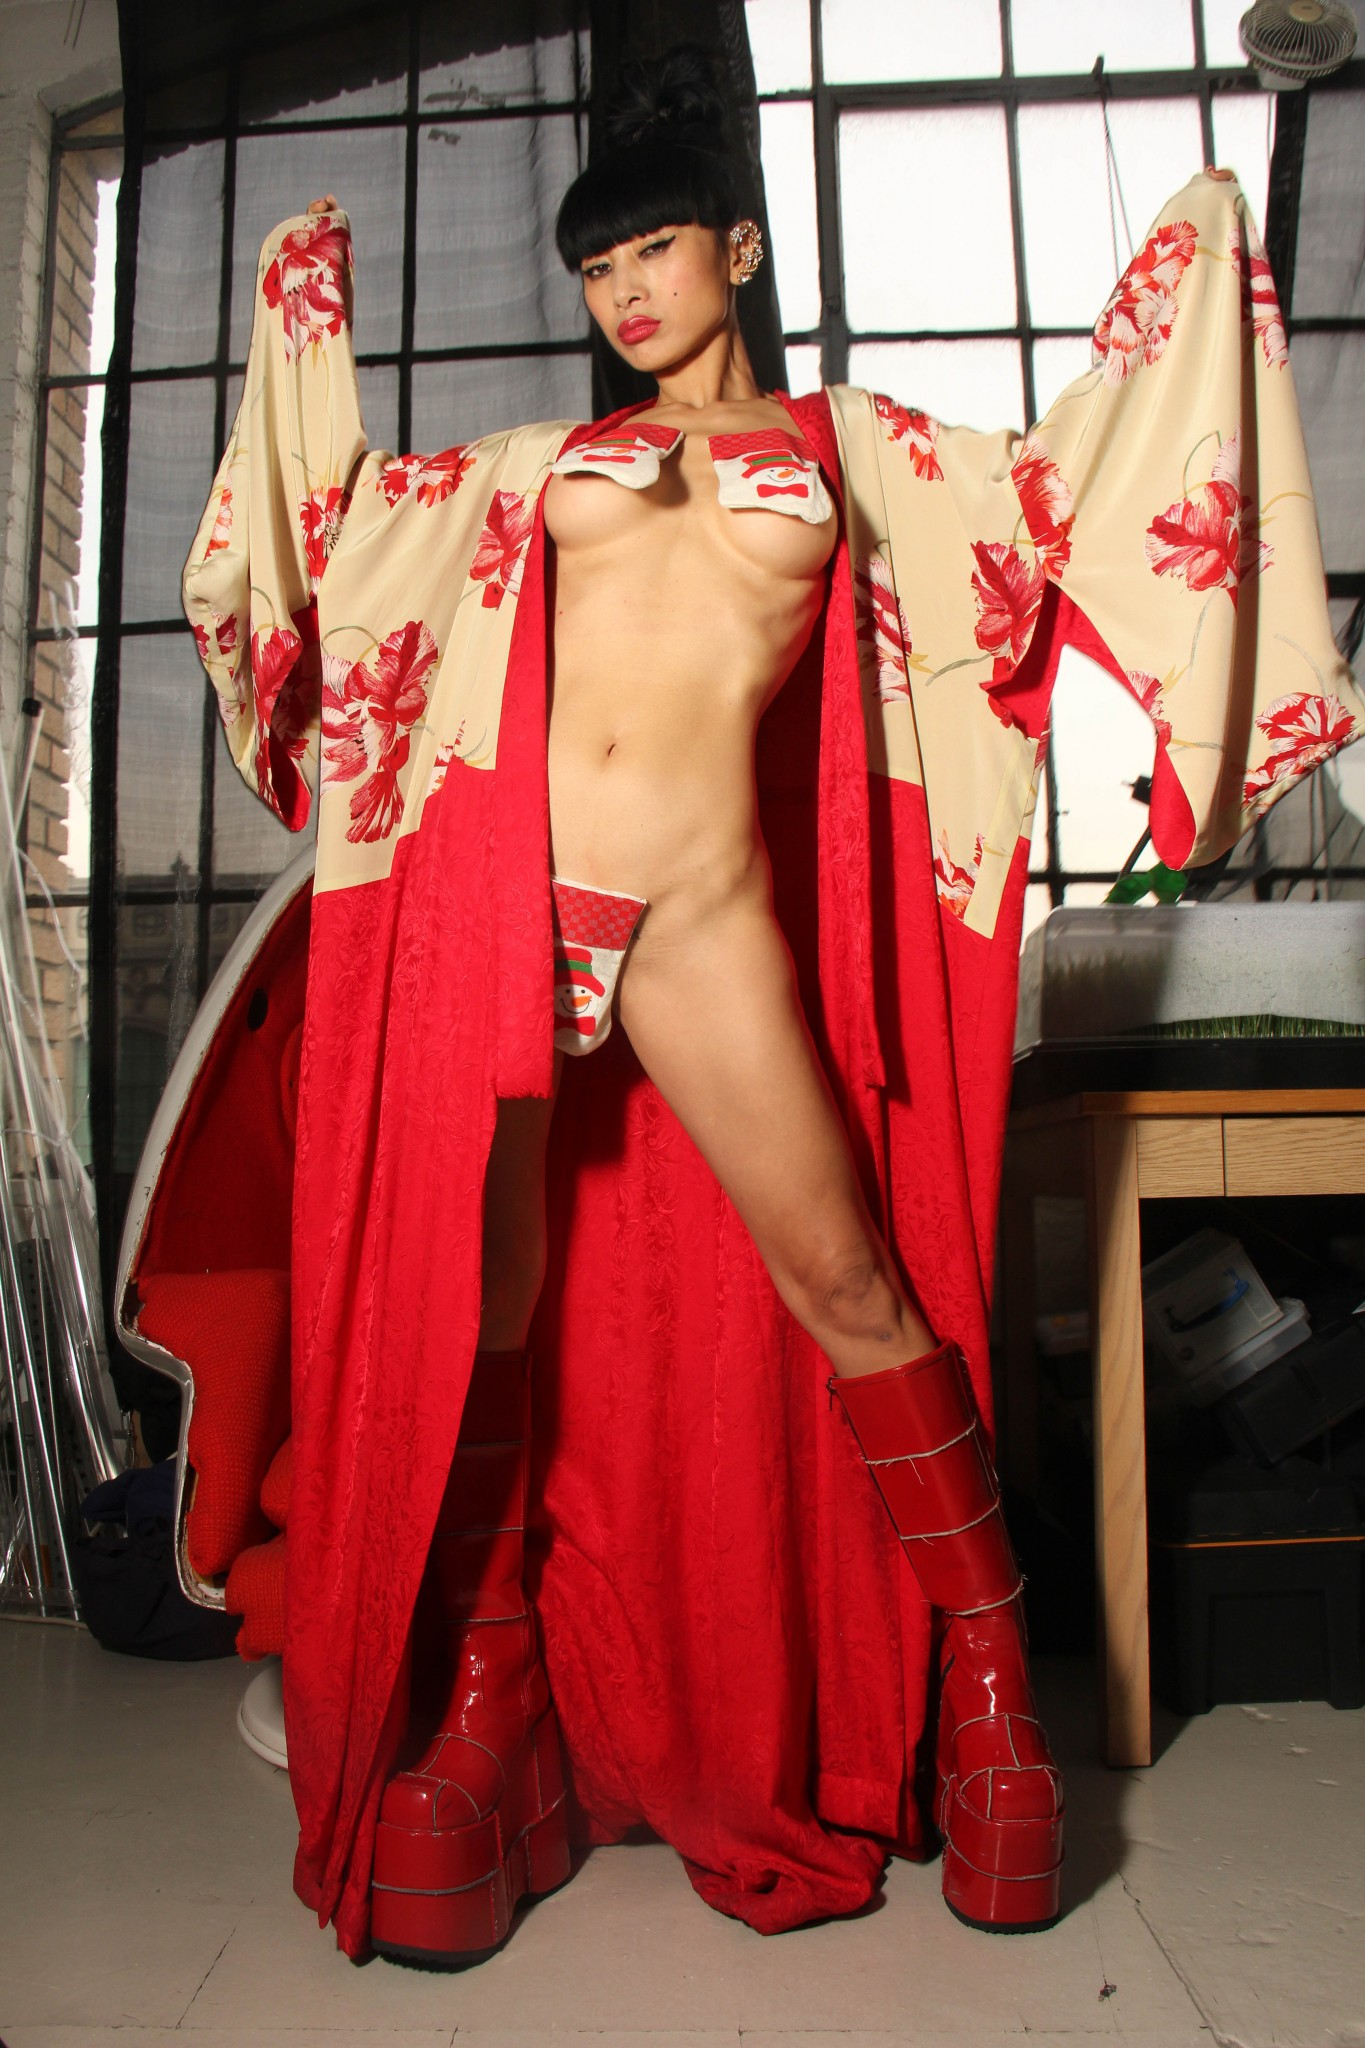 bai-ling-covered-nude-christmas-photoshoot-3.jpg